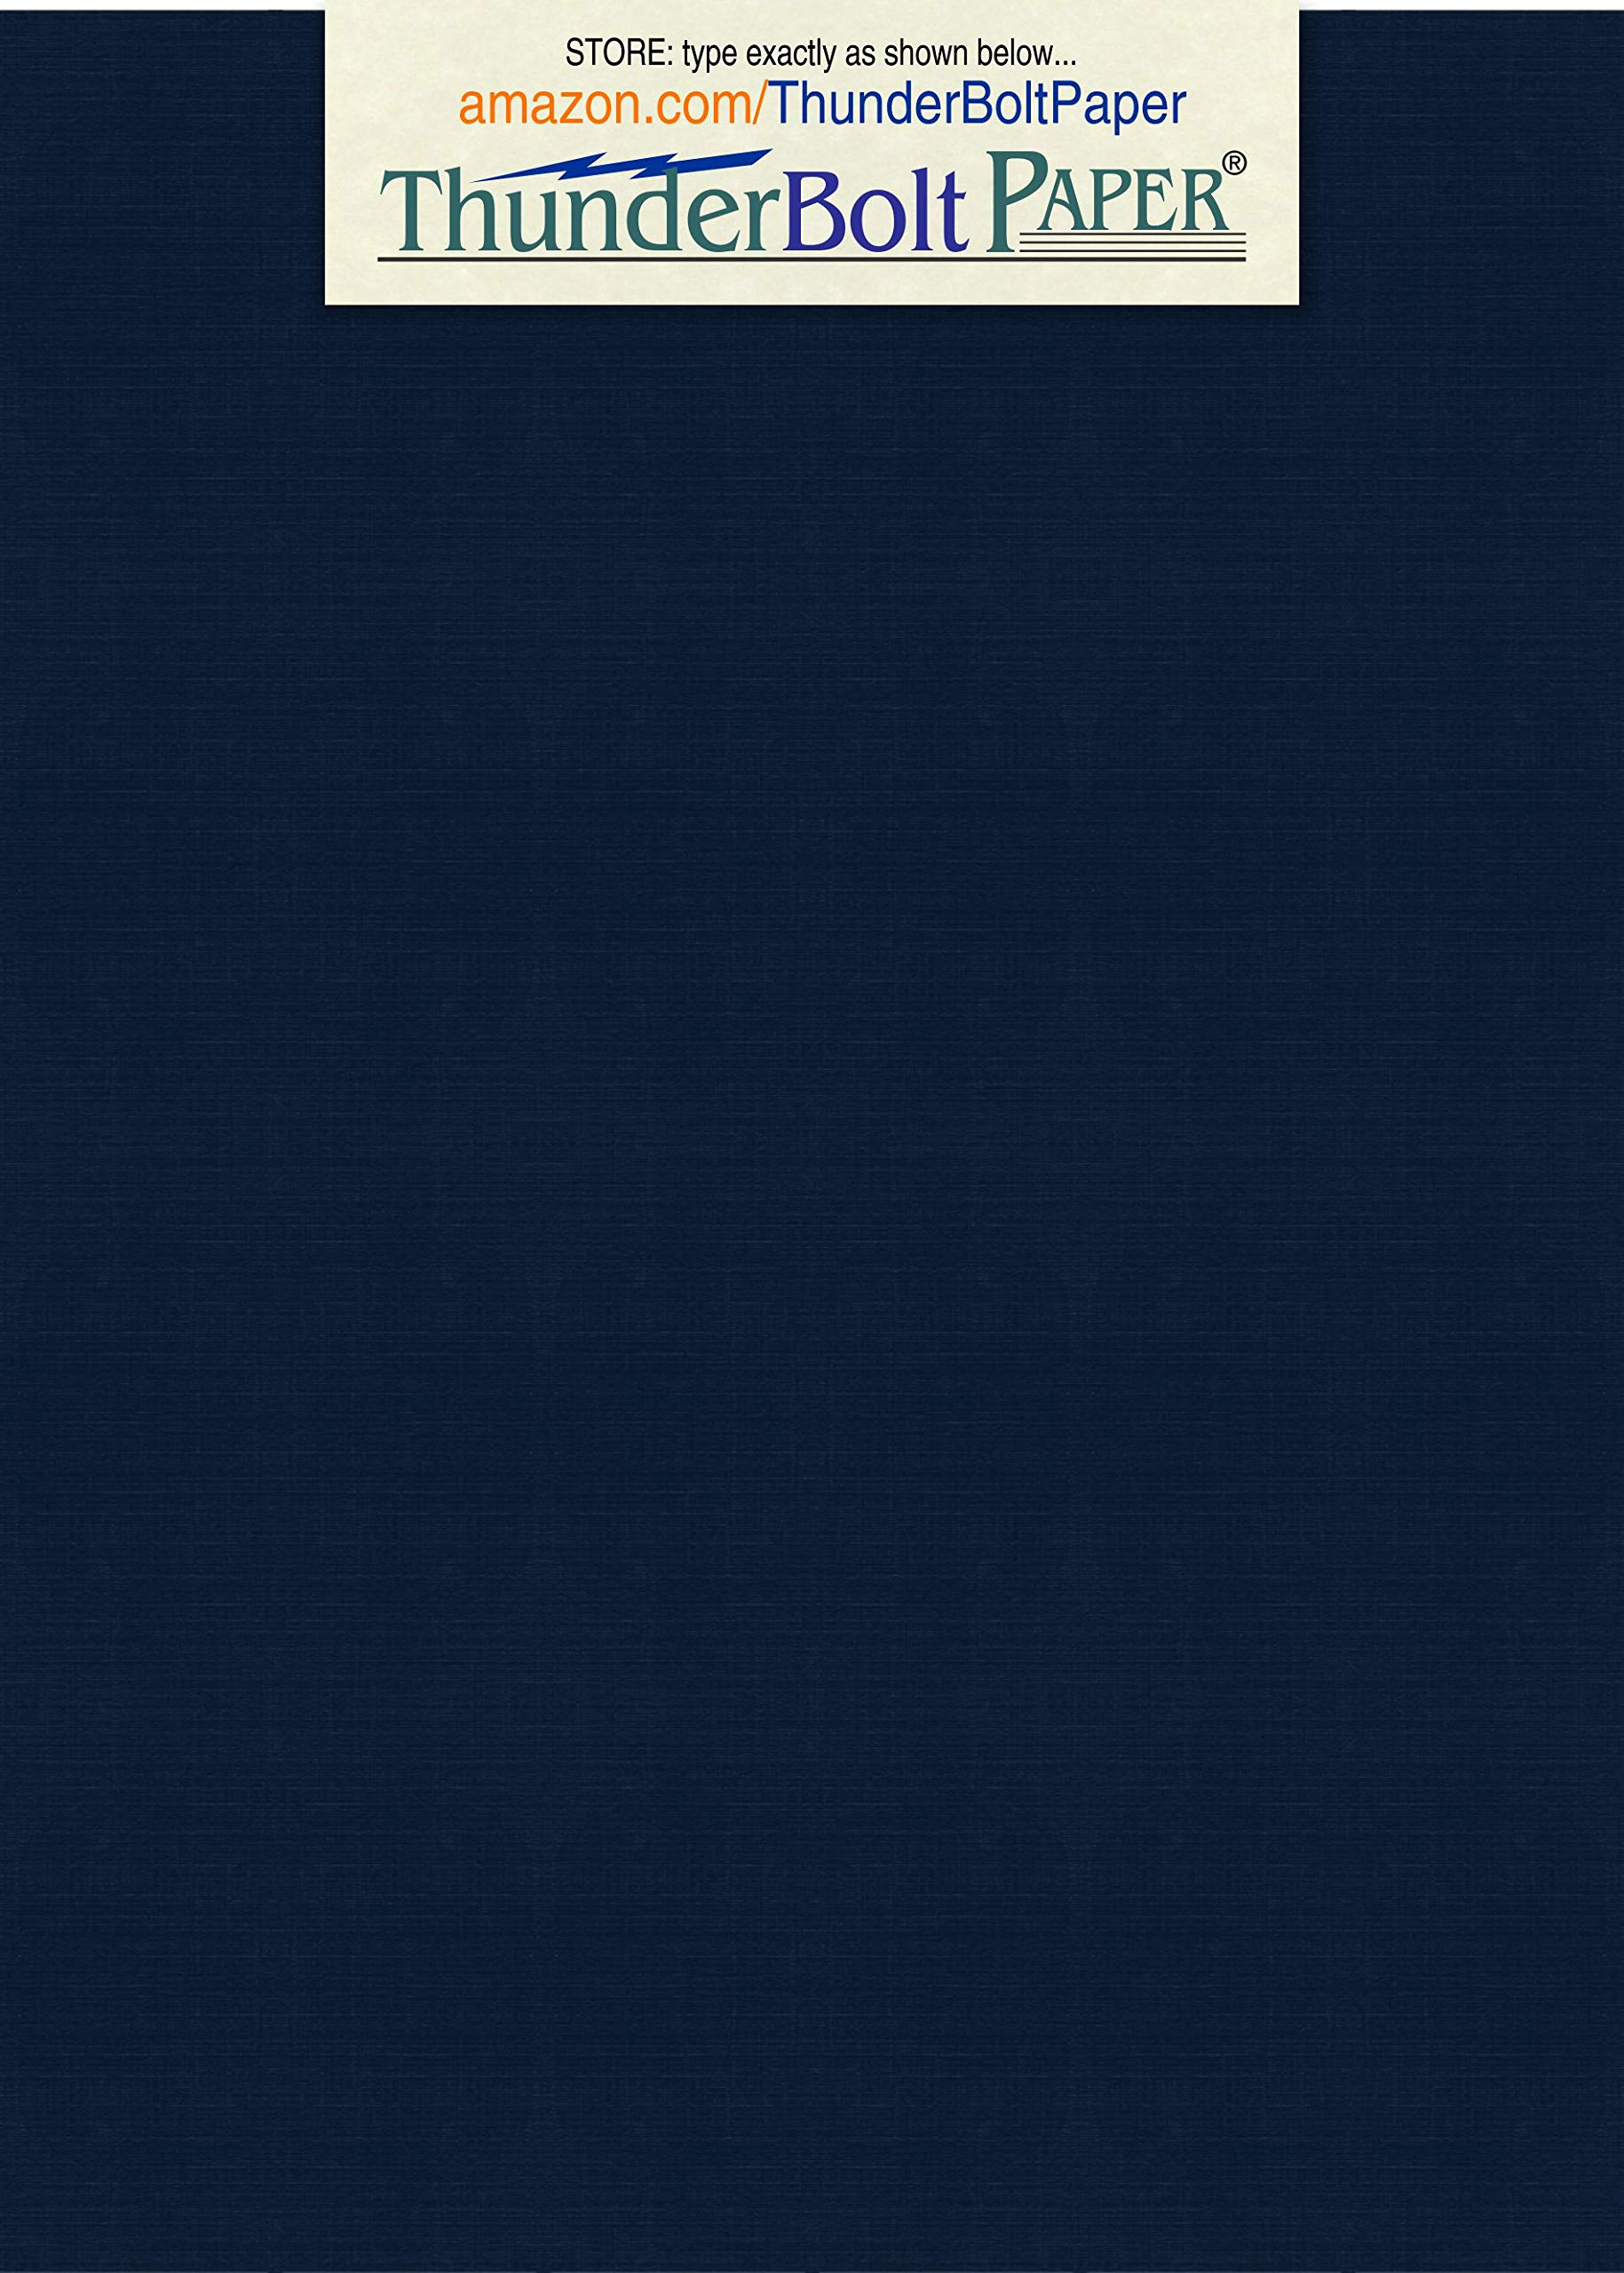 150 Dark Navy Blue Linen 80# Cover Paper Sheets - 5'' X 7'' (5X7 Inches) Photo|Card|Frame Size - 80 lb/Pound Card Weight - Fine Linen Textured Finish - Deep Dye Quality Cardstock